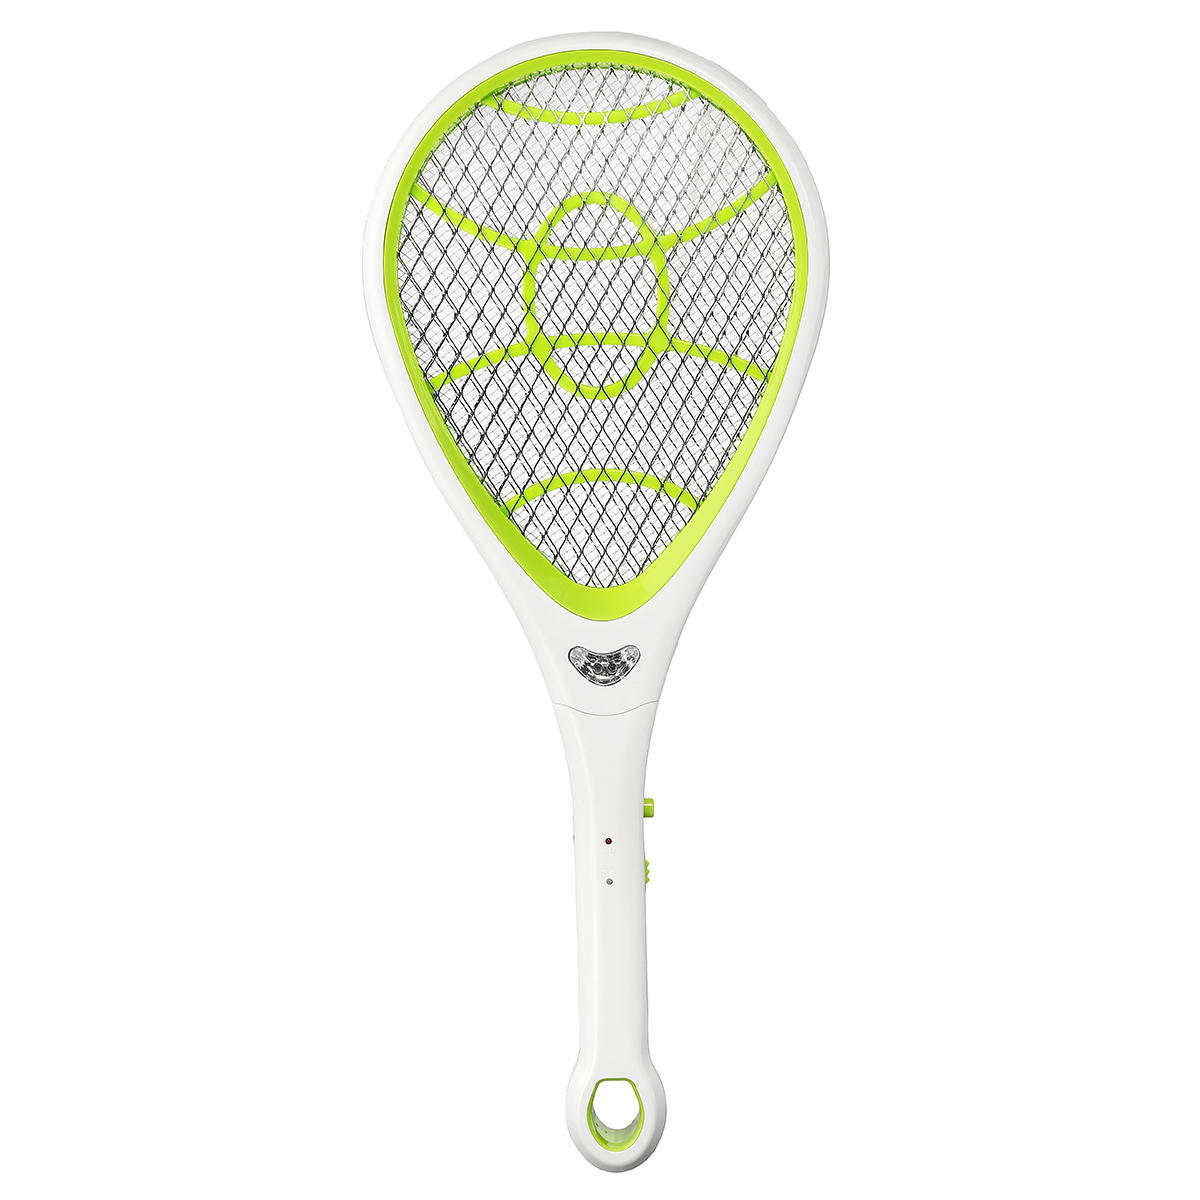 Cordless Handheld Bug Zapper Electric Racket Mosquito Dispeller Fly Insect Swatter Killer